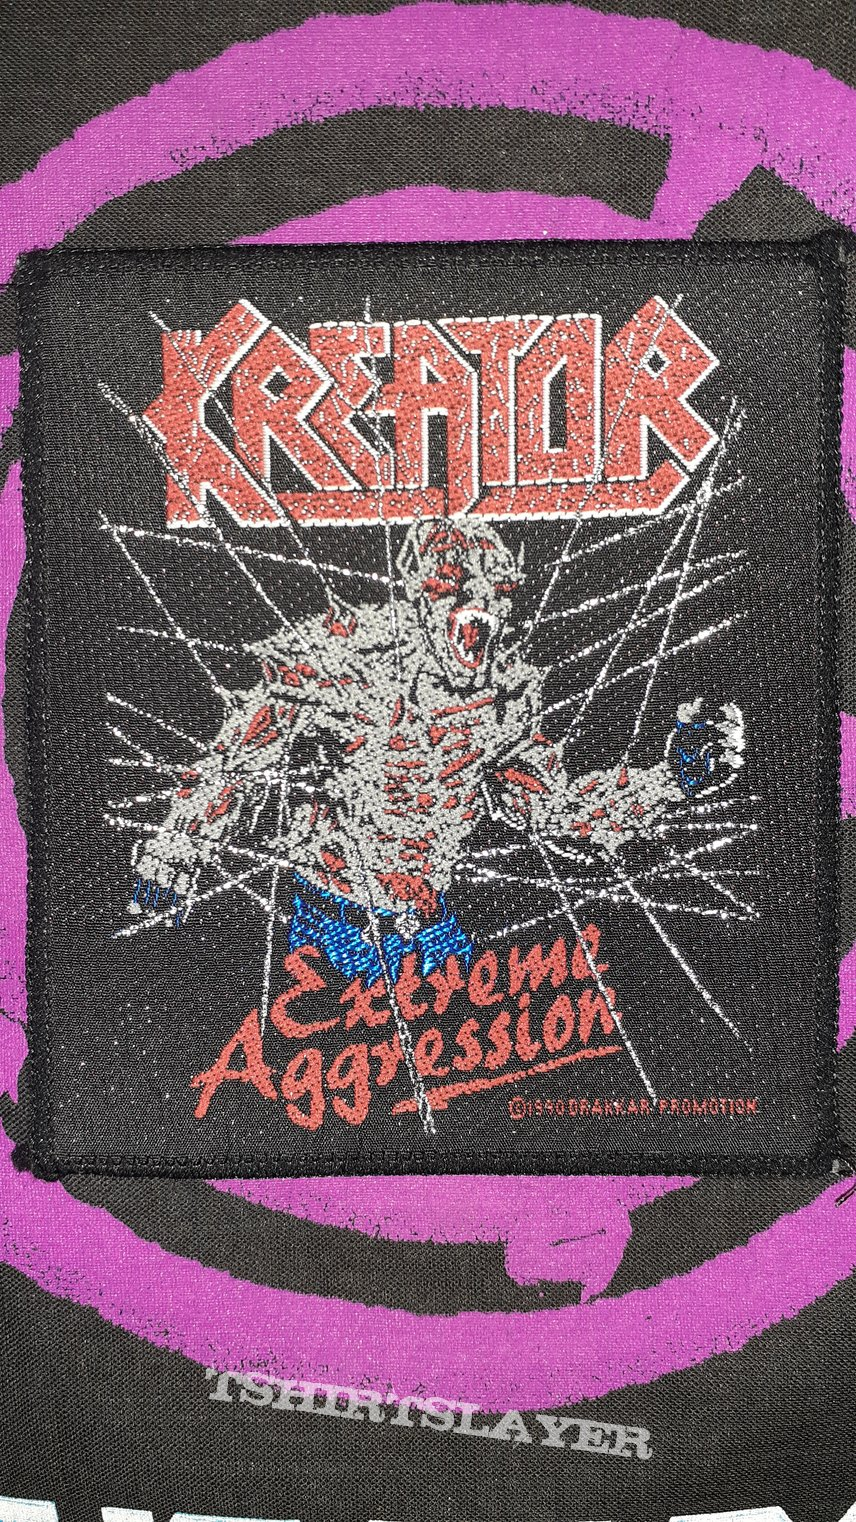 Kreator - Extreme Aggression 1990 Patch